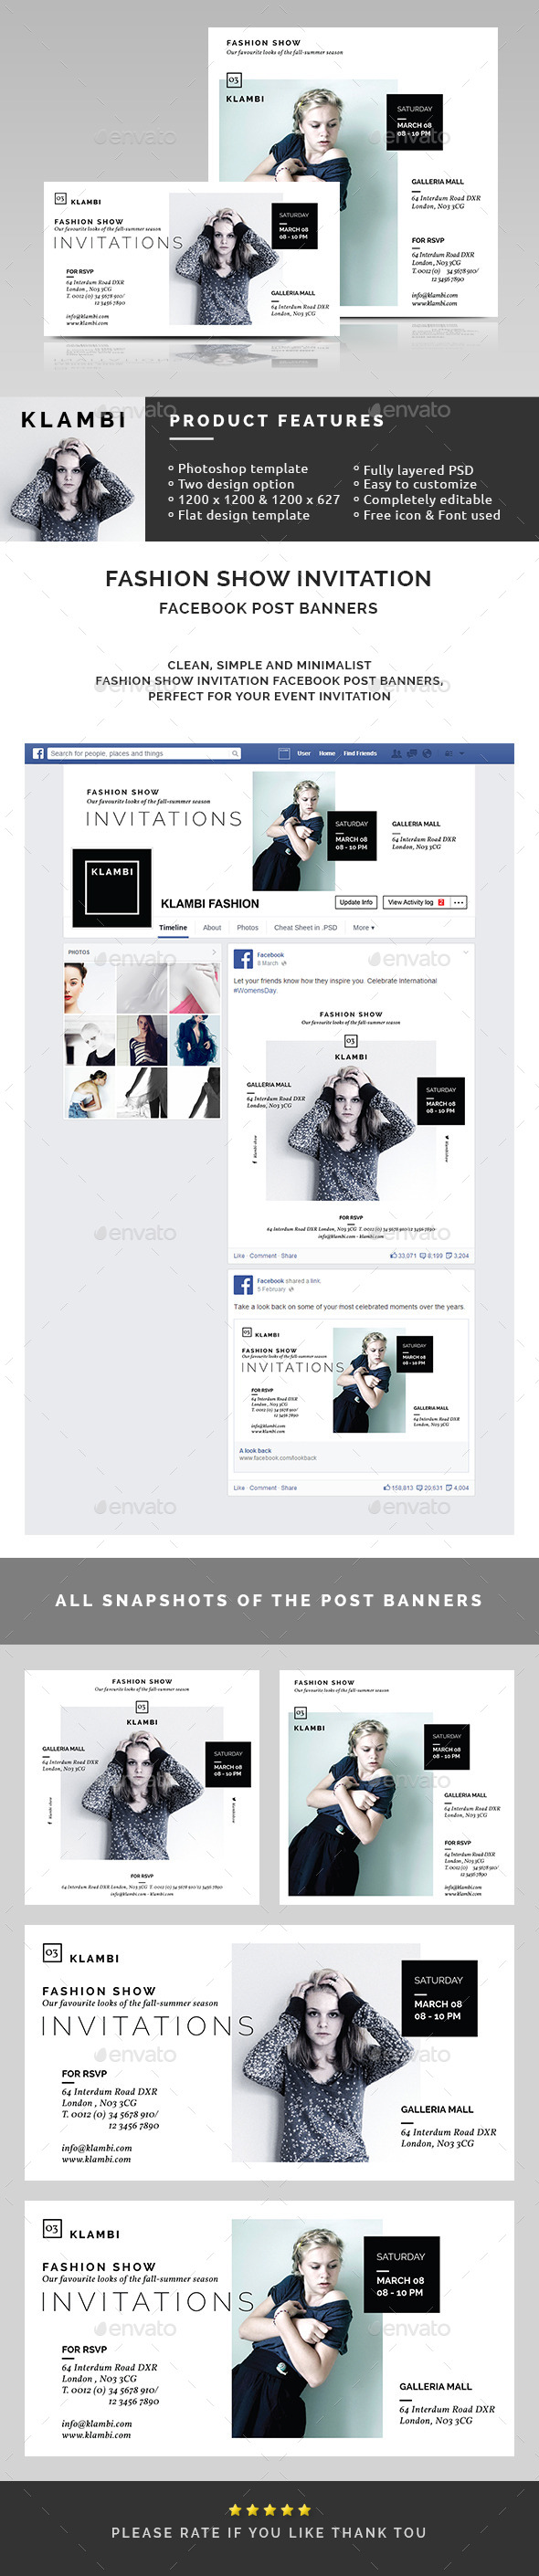 GraphicRiver Fashion Show Invitation Facebook Post Banners 10618439